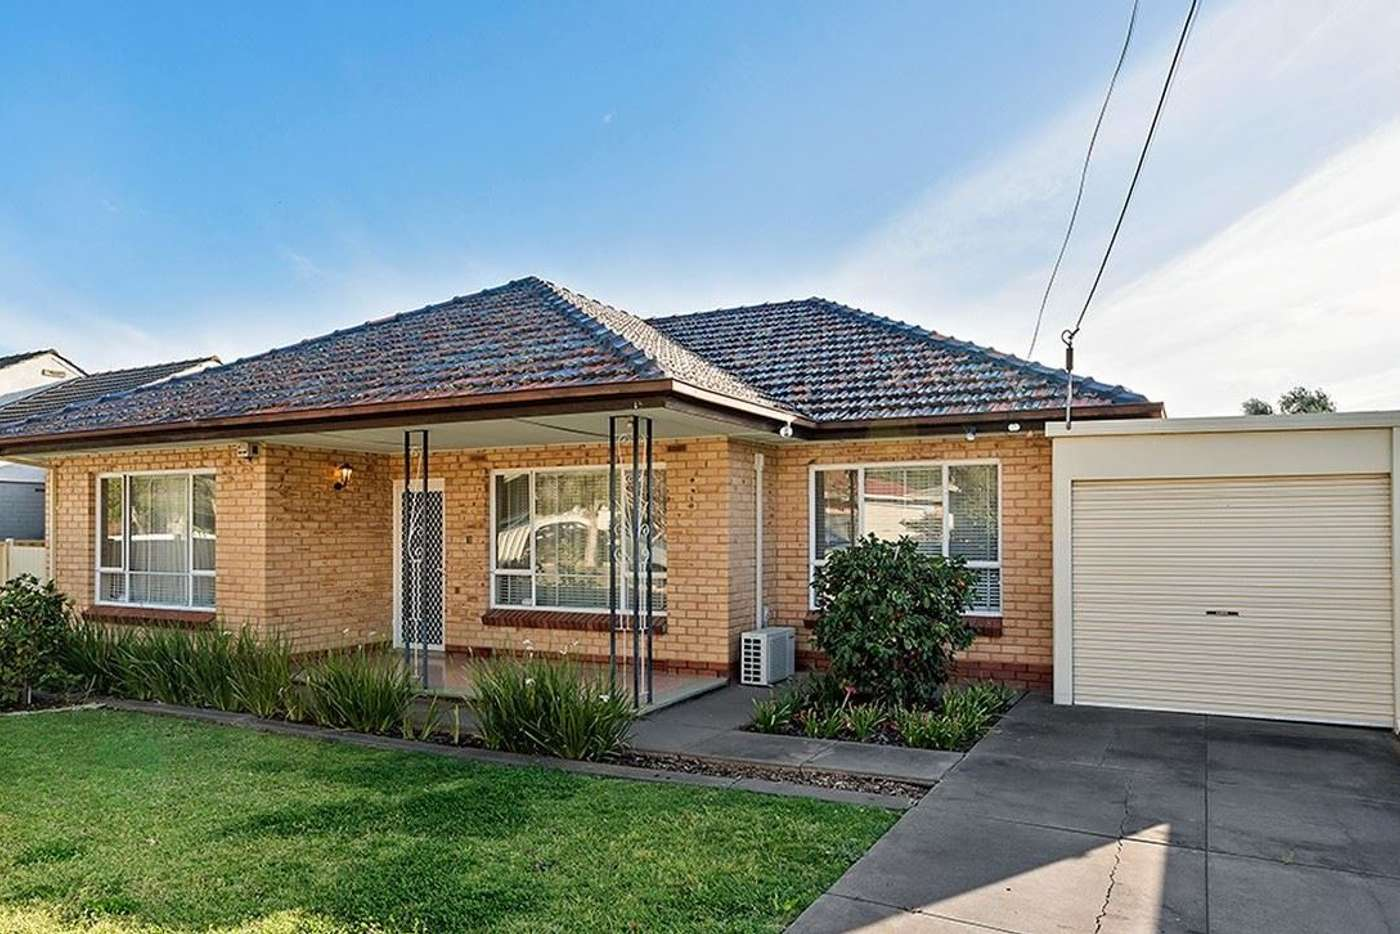 Main view of Homely house listing, 8 Wattle Street, Campbelltown SA 5074